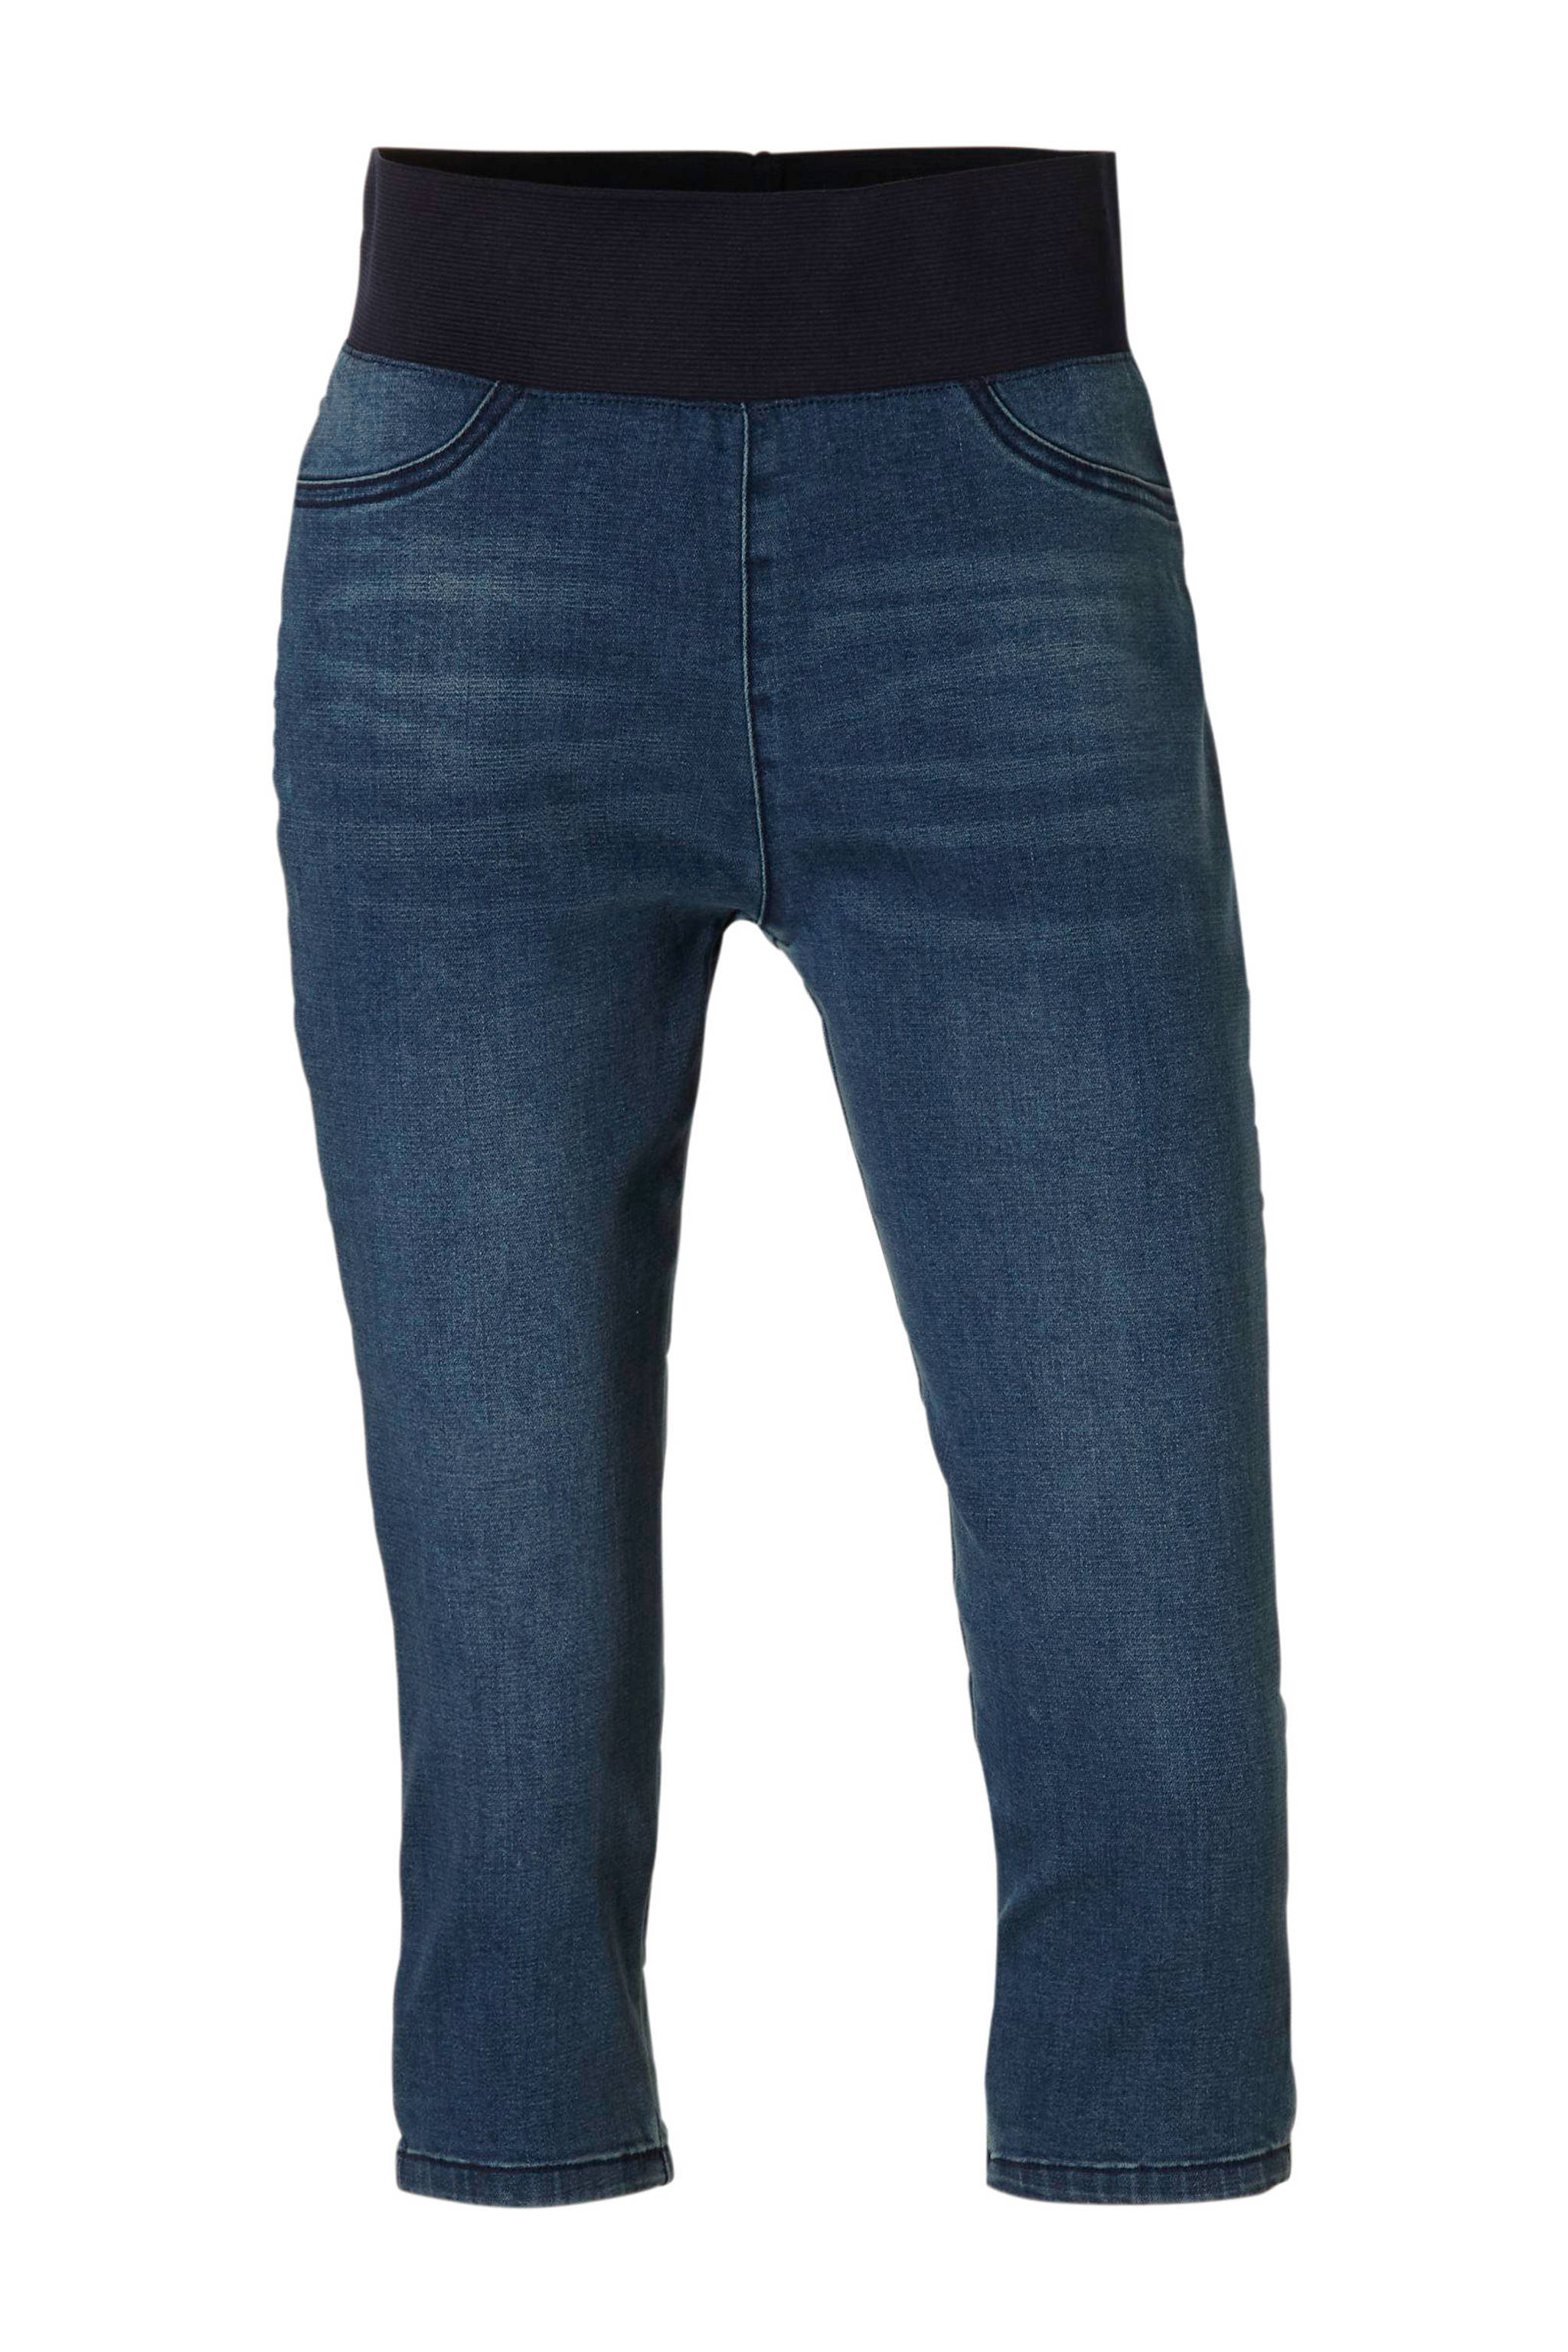 freequent capri jeans met elastische band shantal medium blue denim dark denim 5713837321532 - Capri Broek Met Elastische Band